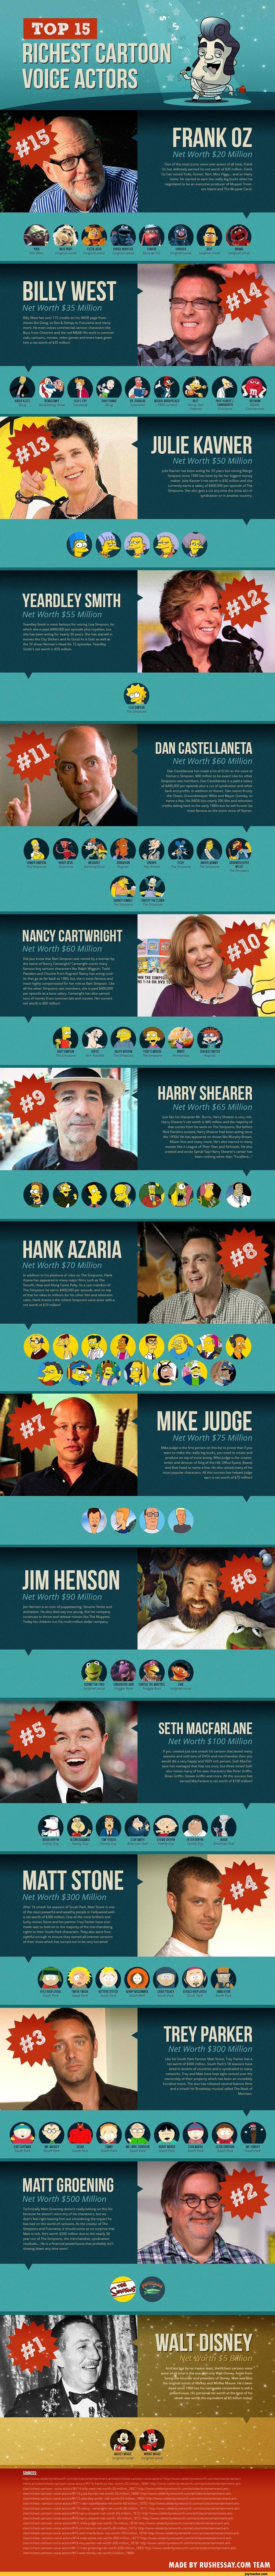 Highest Paid Voice Actors In The World